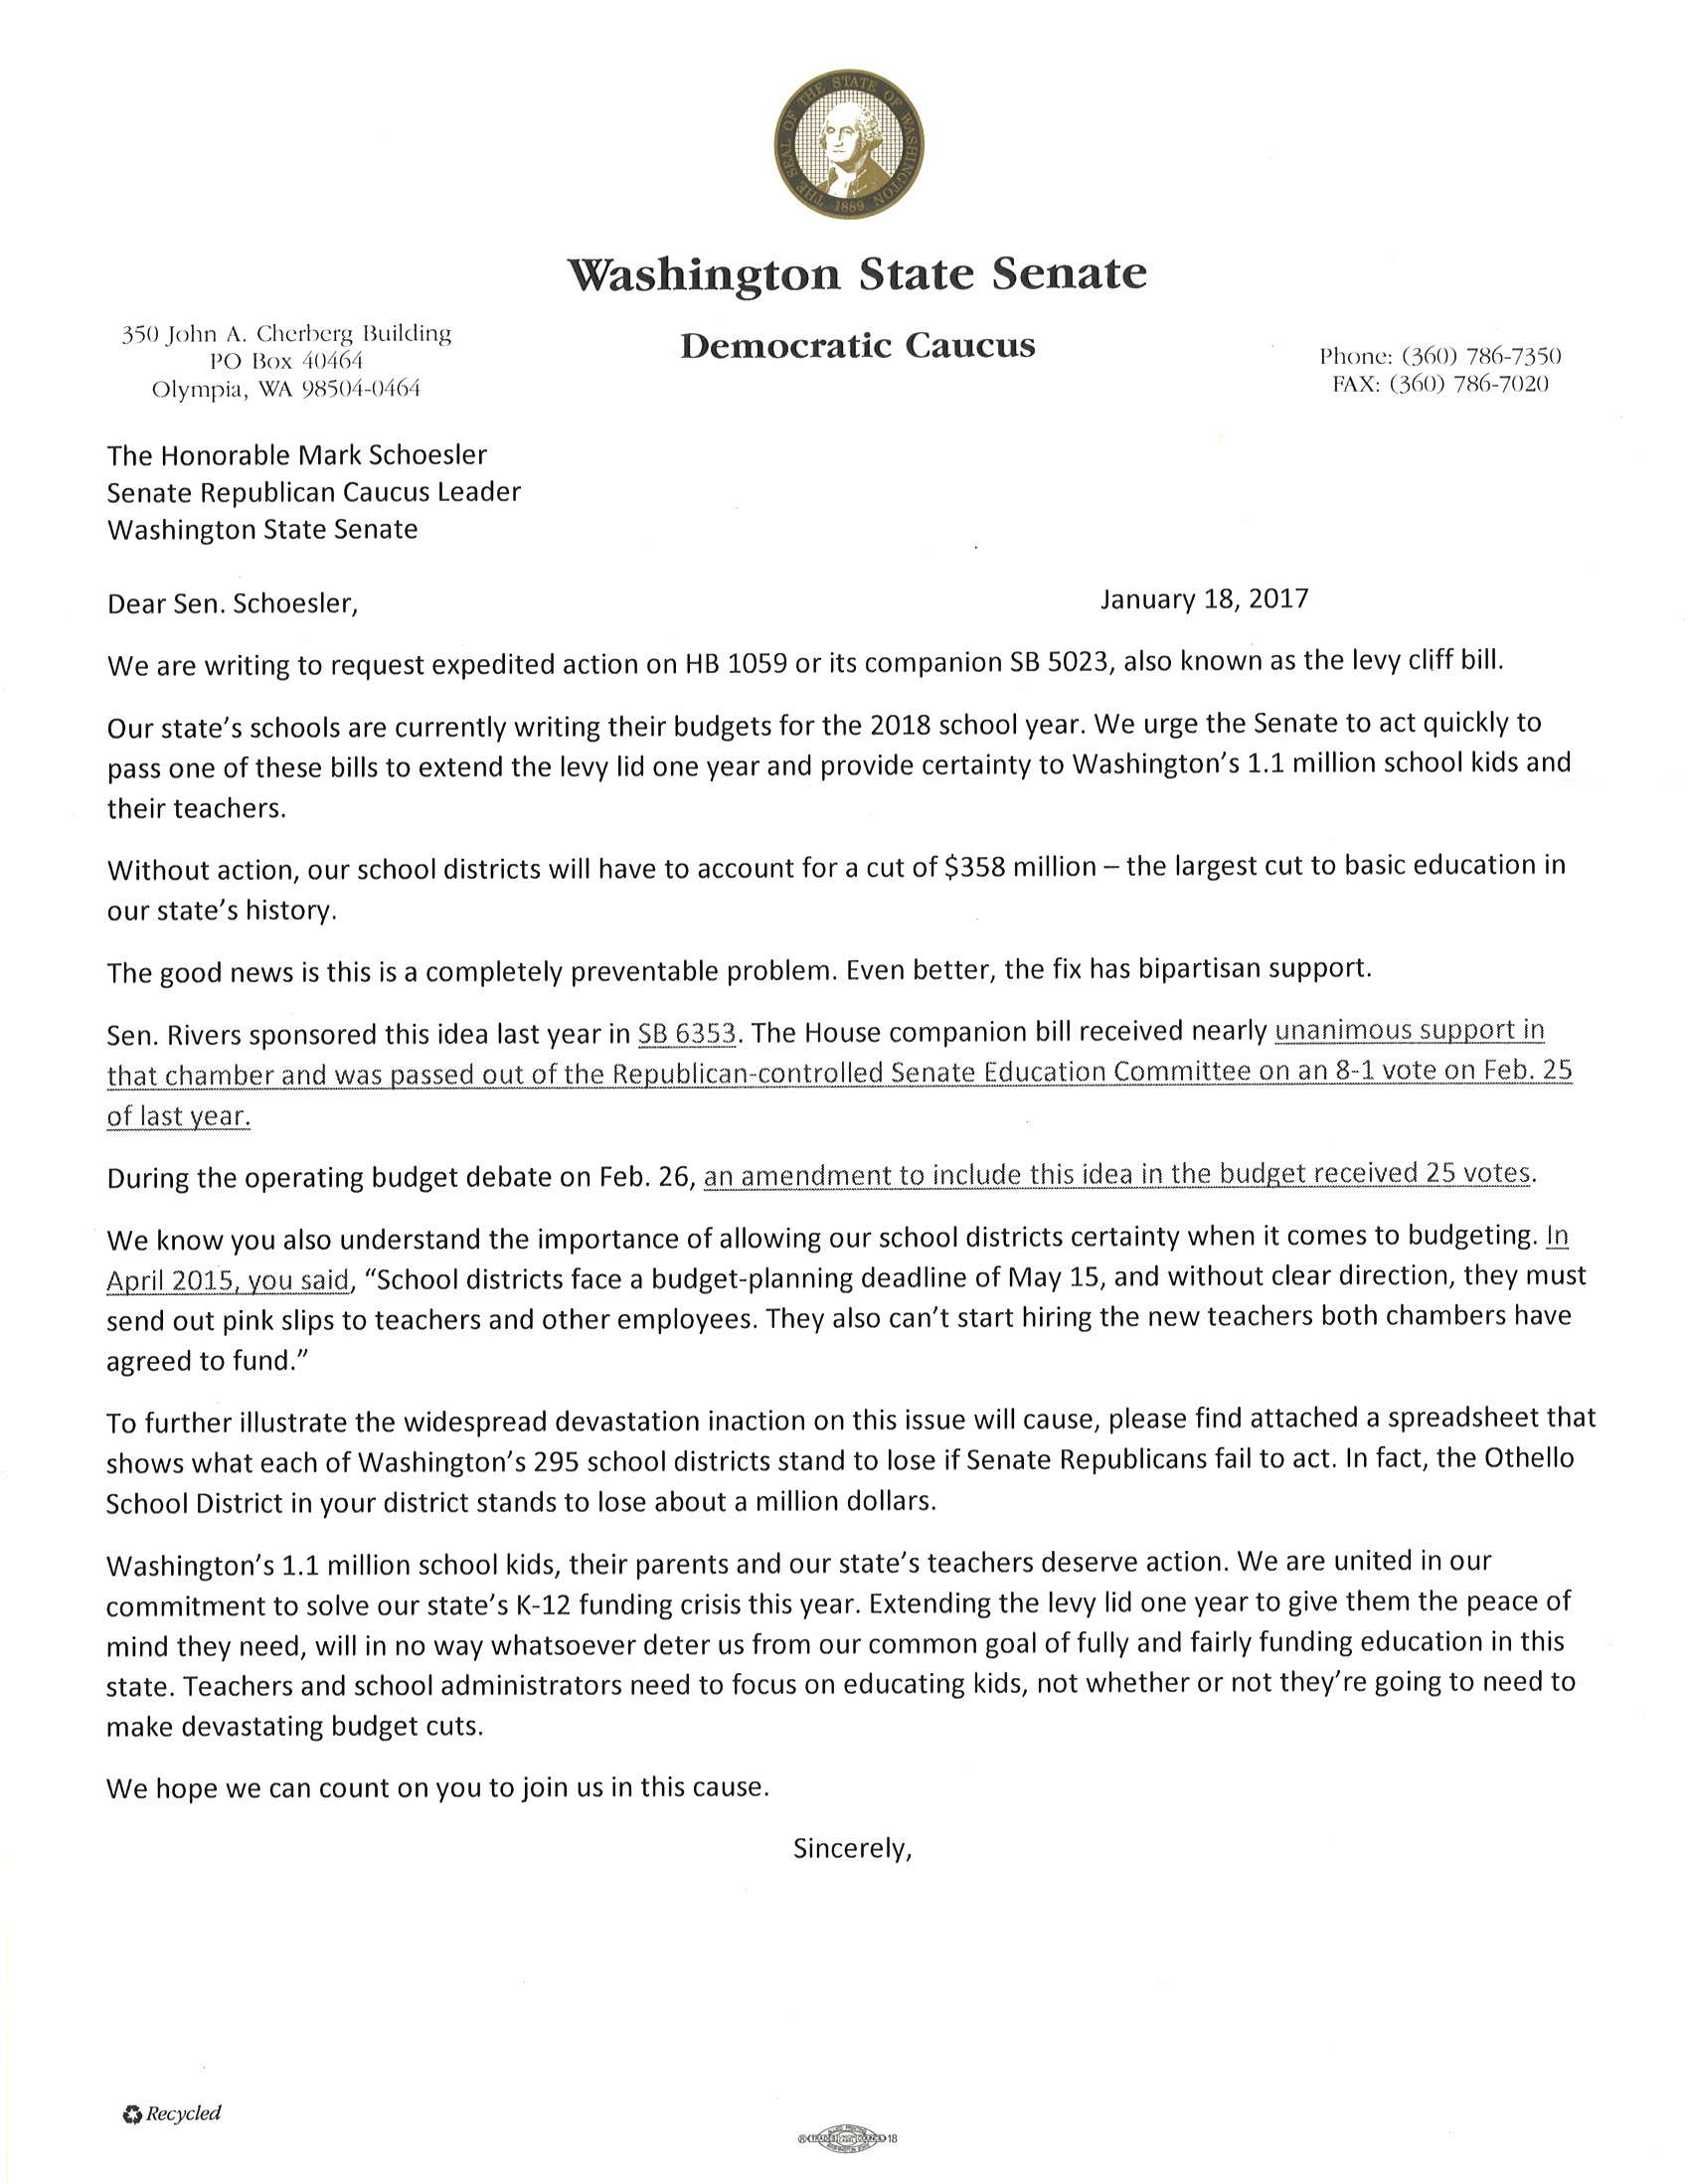 washington state senate democrats democrats urge senate